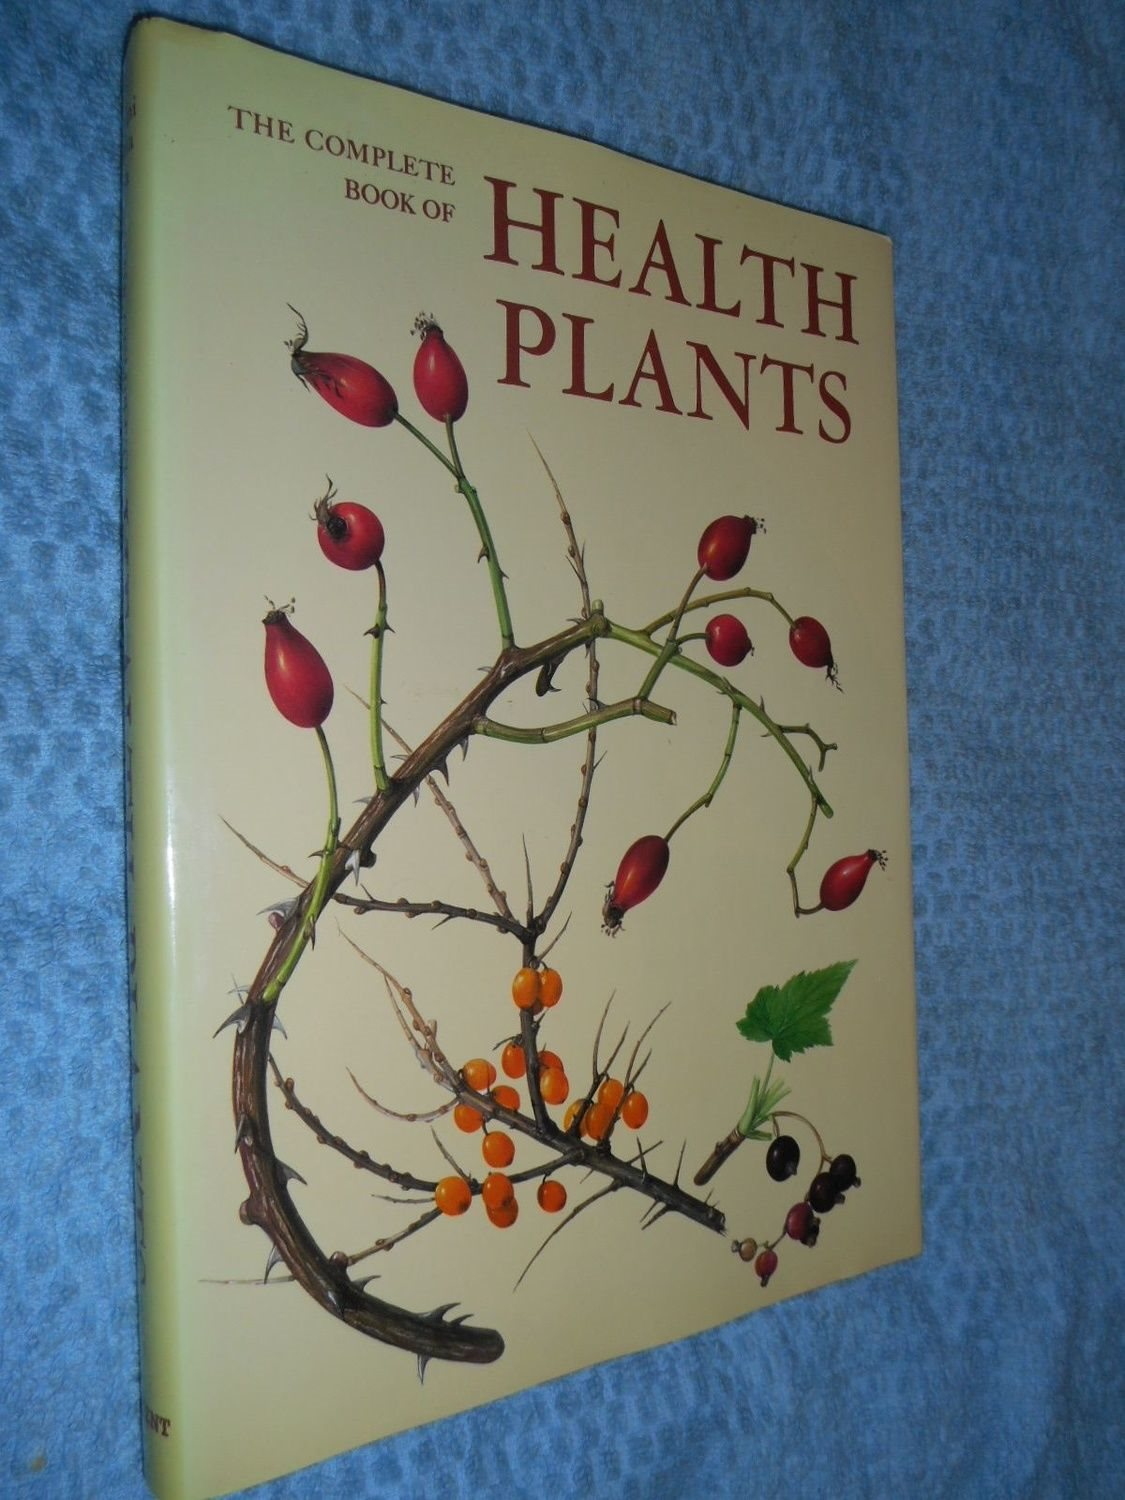 The Complete Book Of Health Plants - Atlas of Medical Medical Medical Plants ee8497